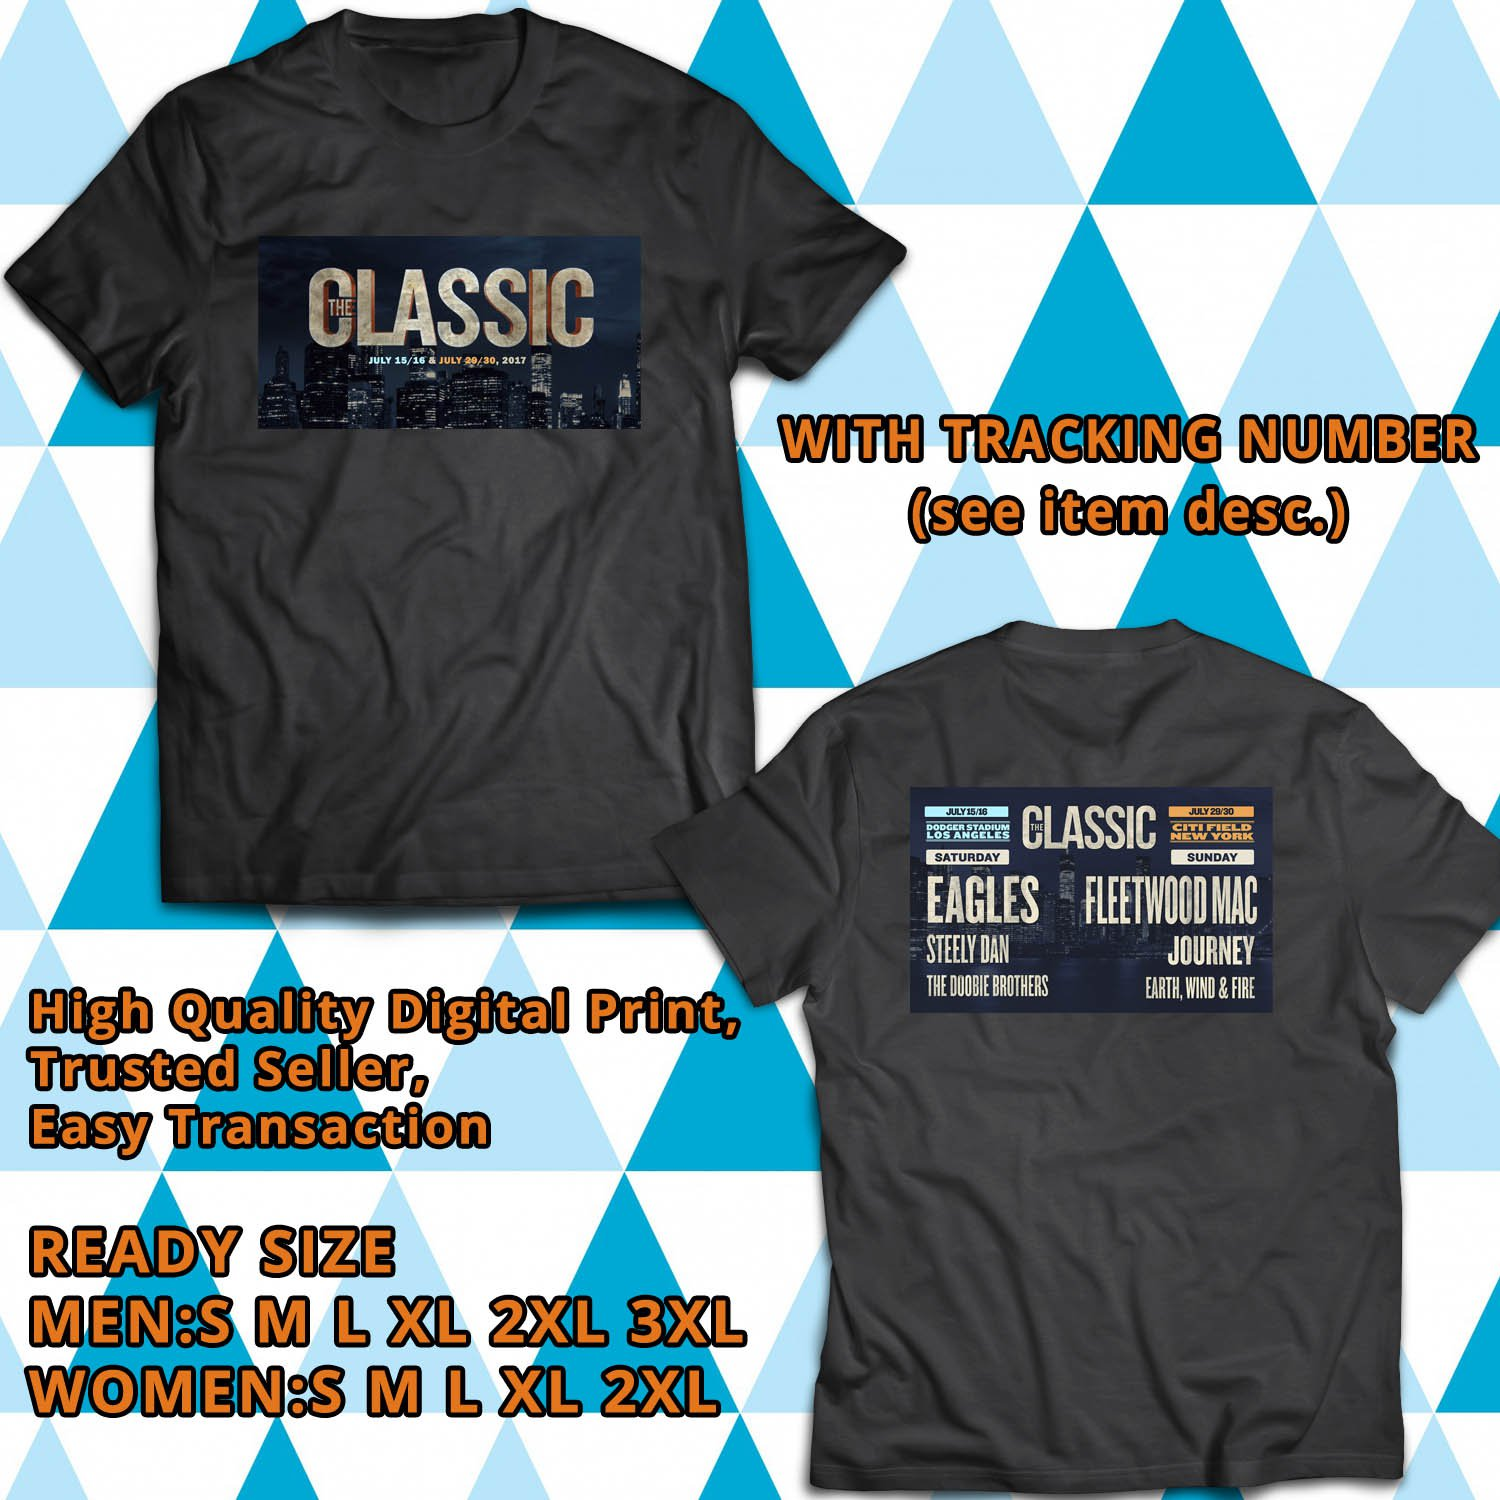 HITS THE CLASSIC EAST AND WEST JULY 2017 BLACK TEE'S 2SIDE MAN WOMEN ASTR 777